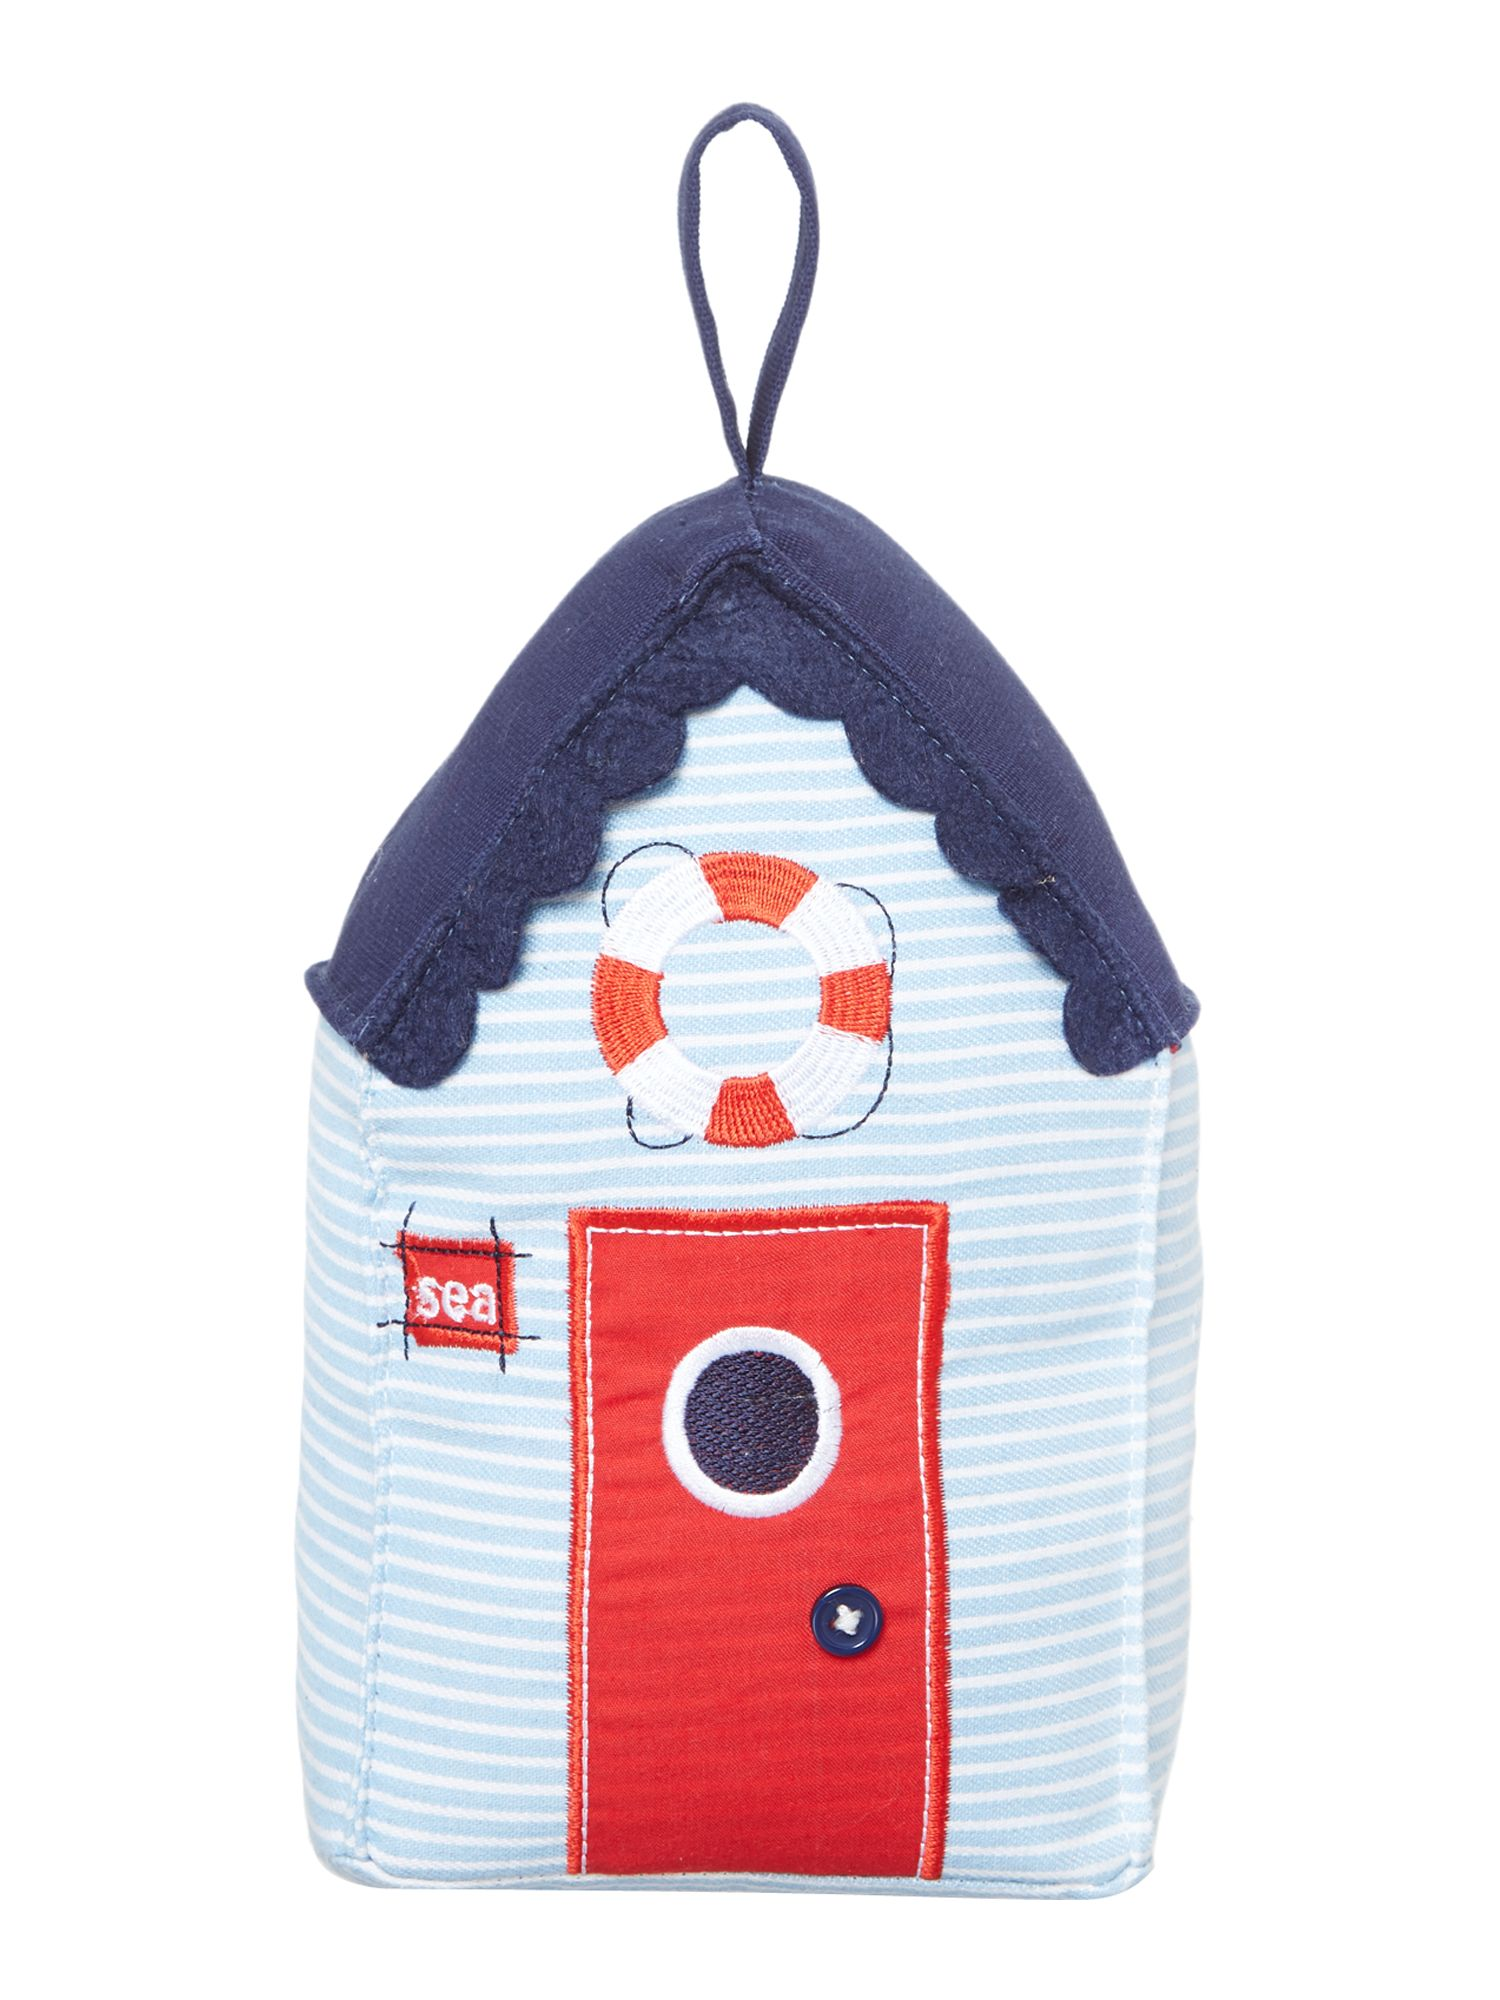 Beach hut doorstop